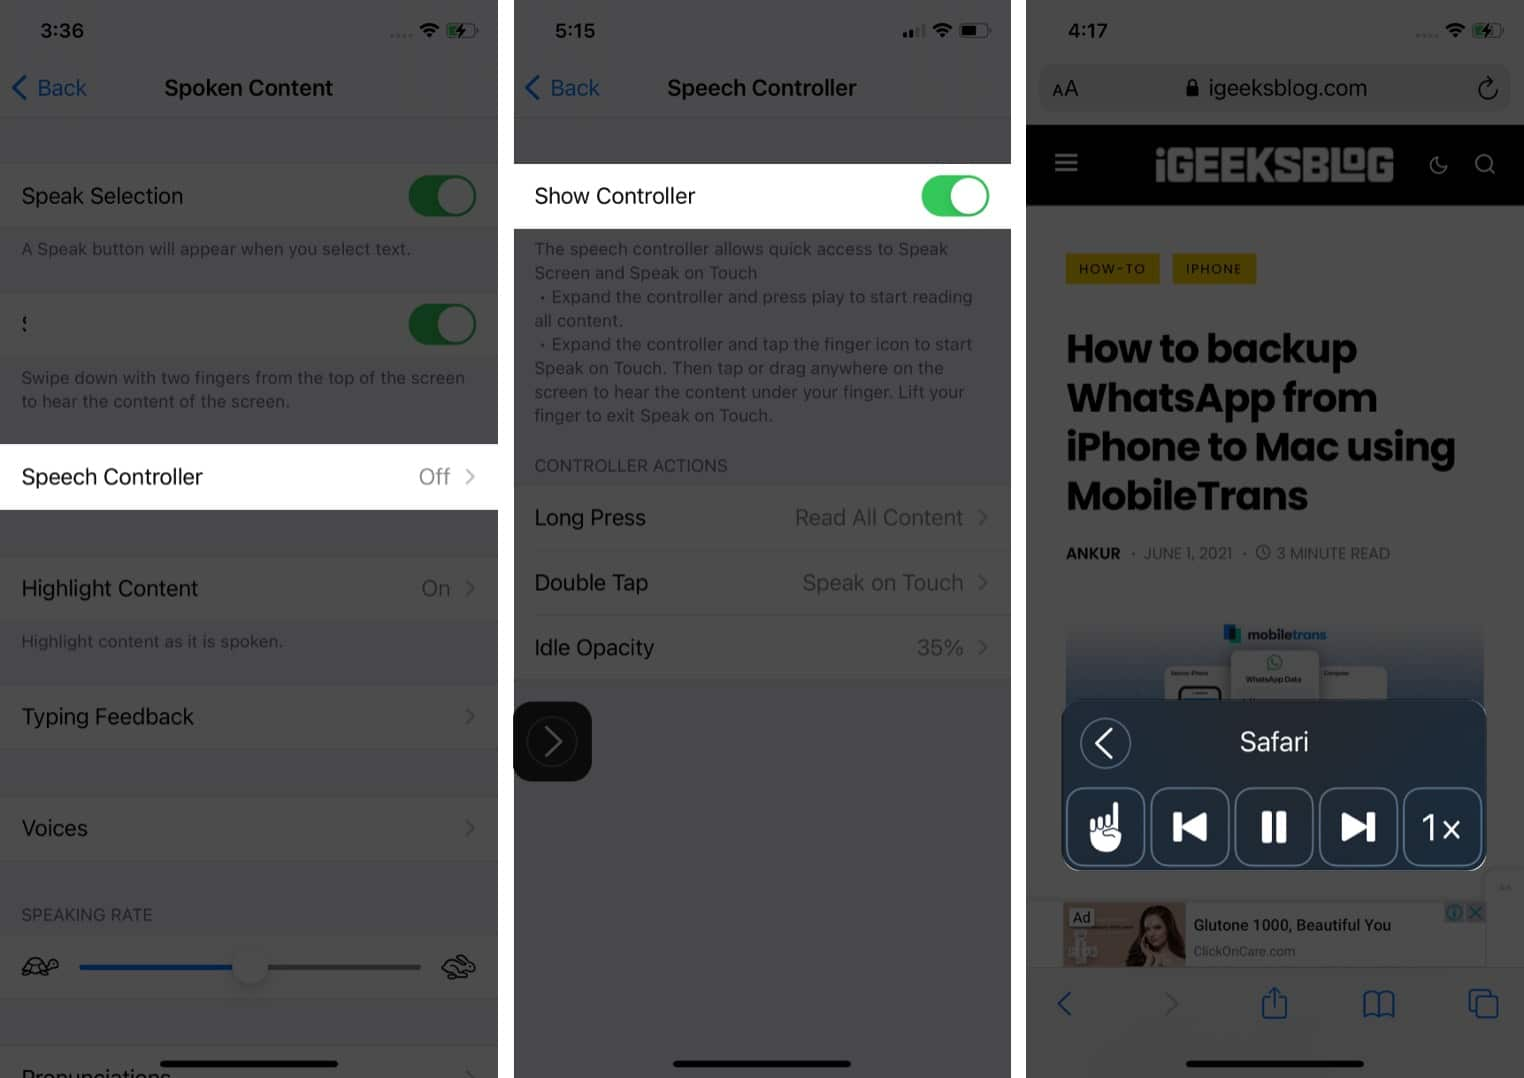 Enable Speech Controller to read text from Safari on iPhone